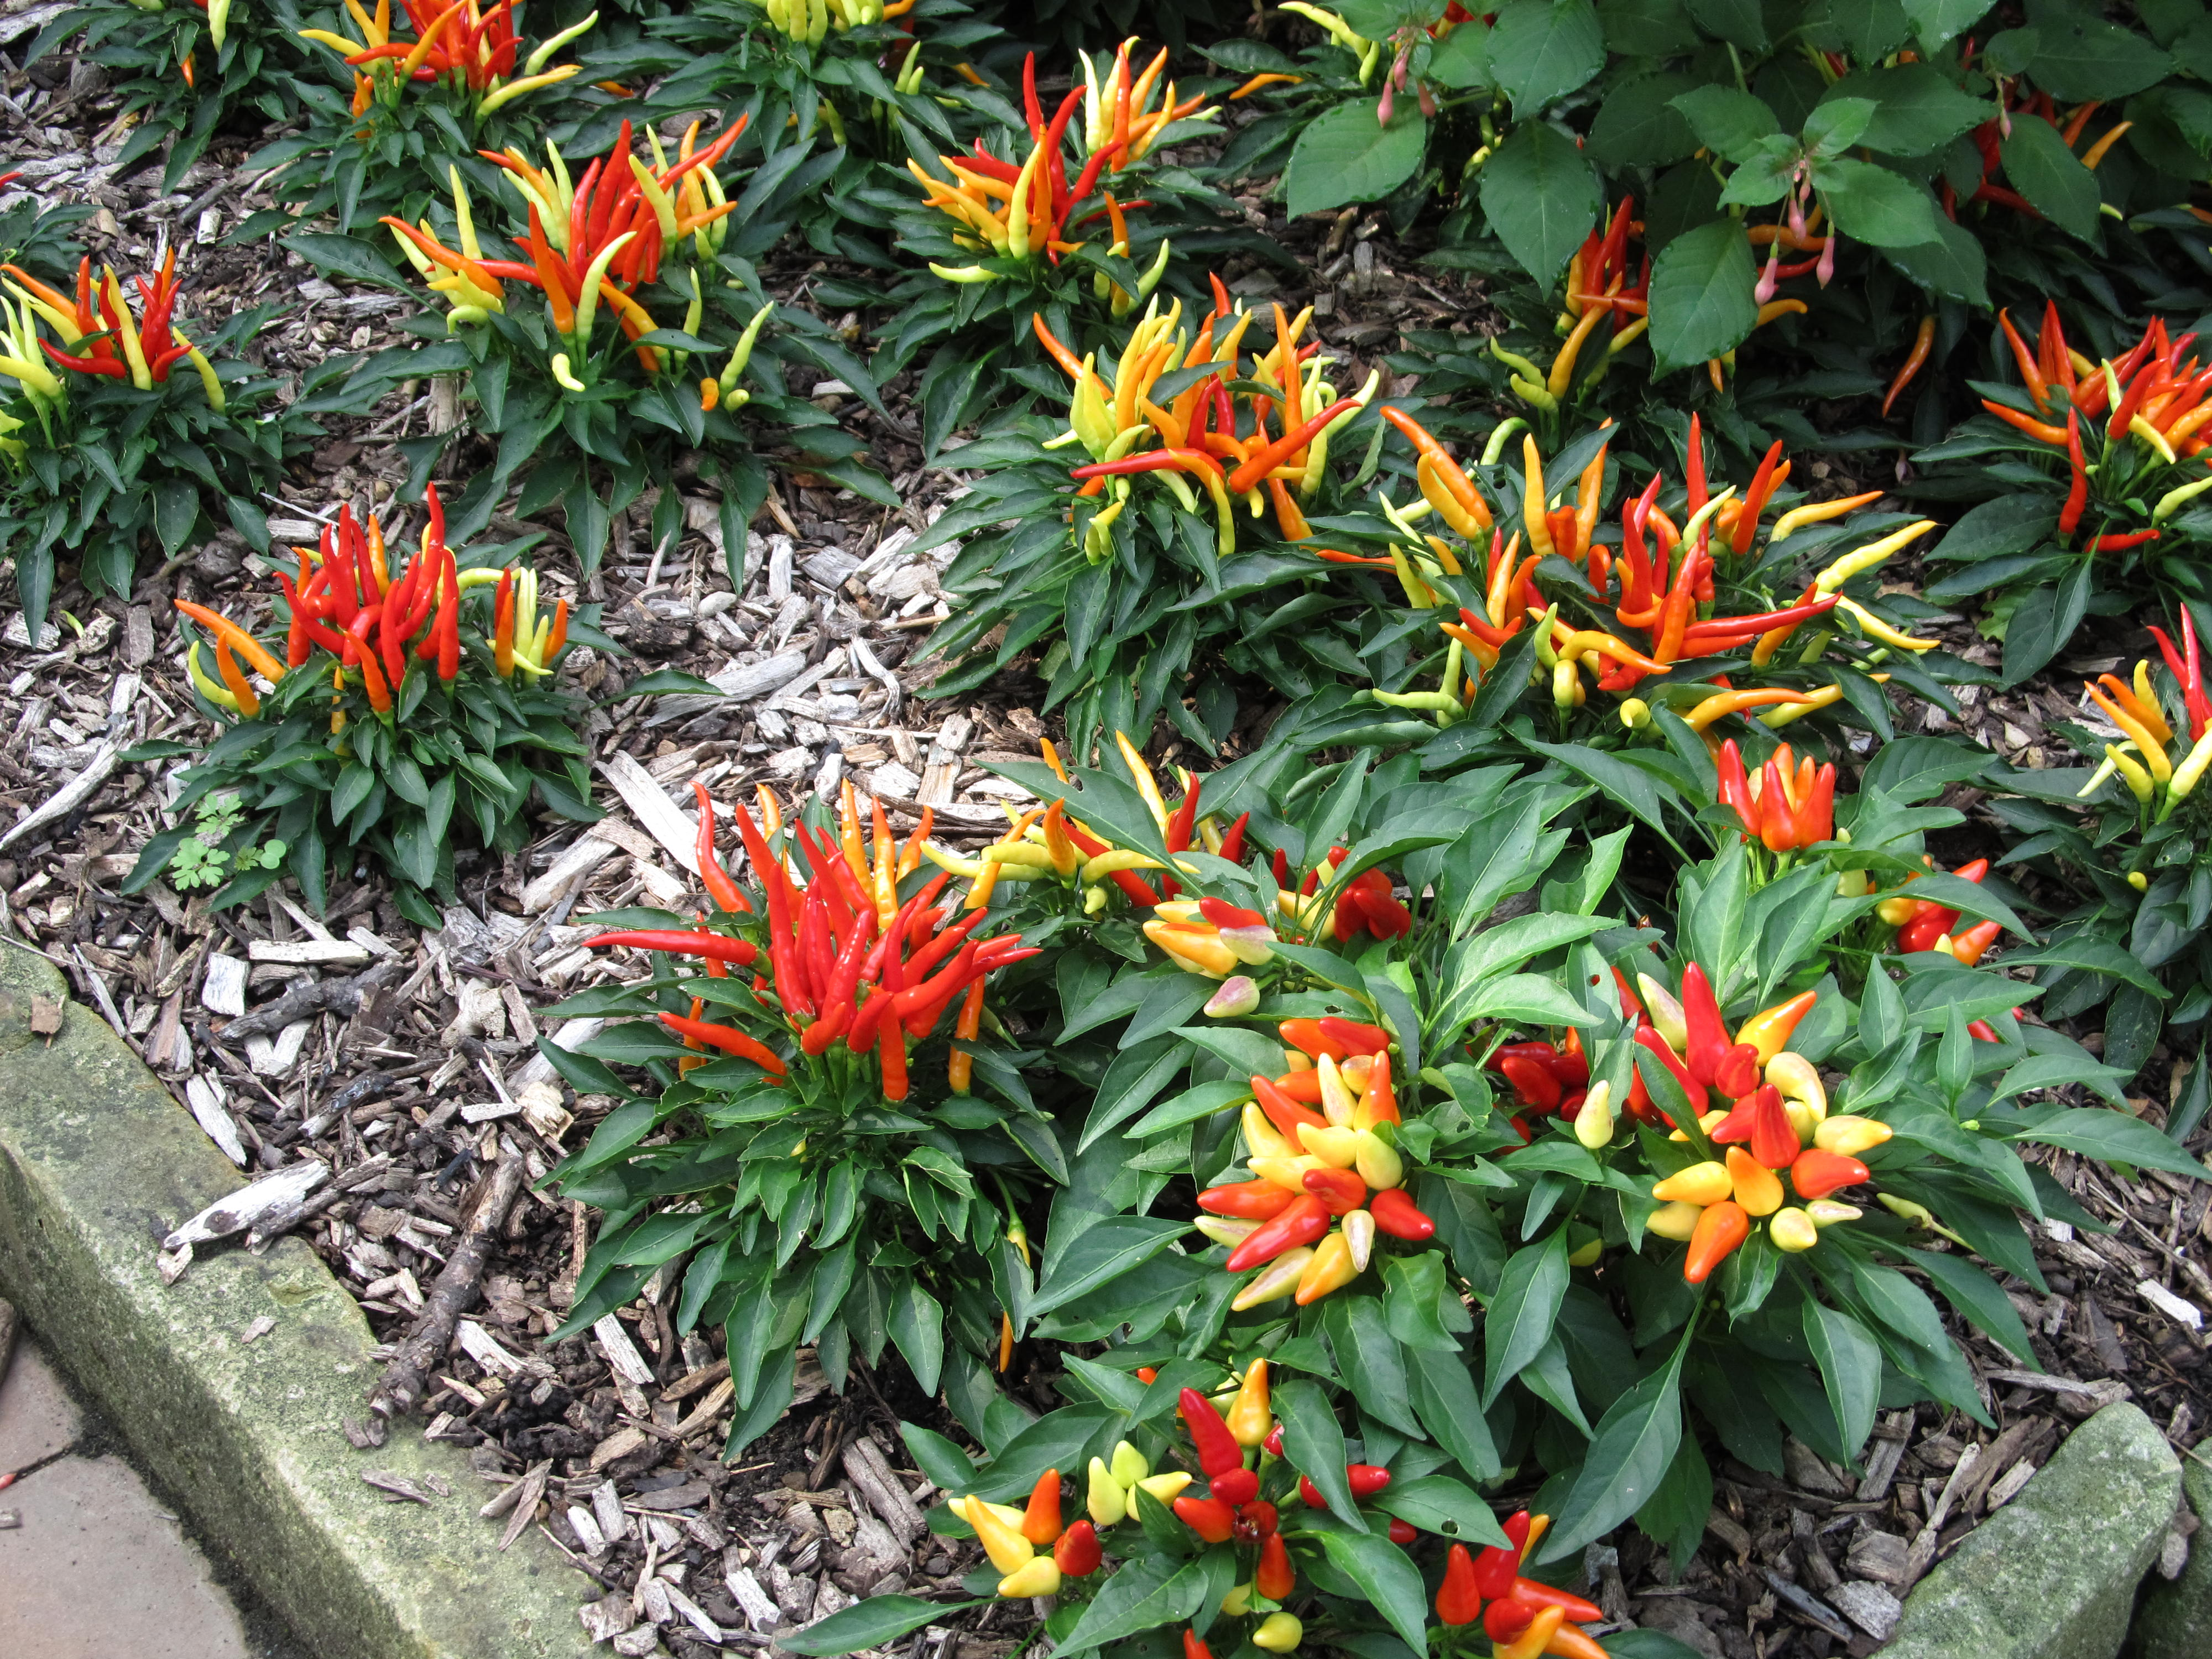 Ornamental peppers sizzle in autumn what grows there for Ornamental vegetable plants